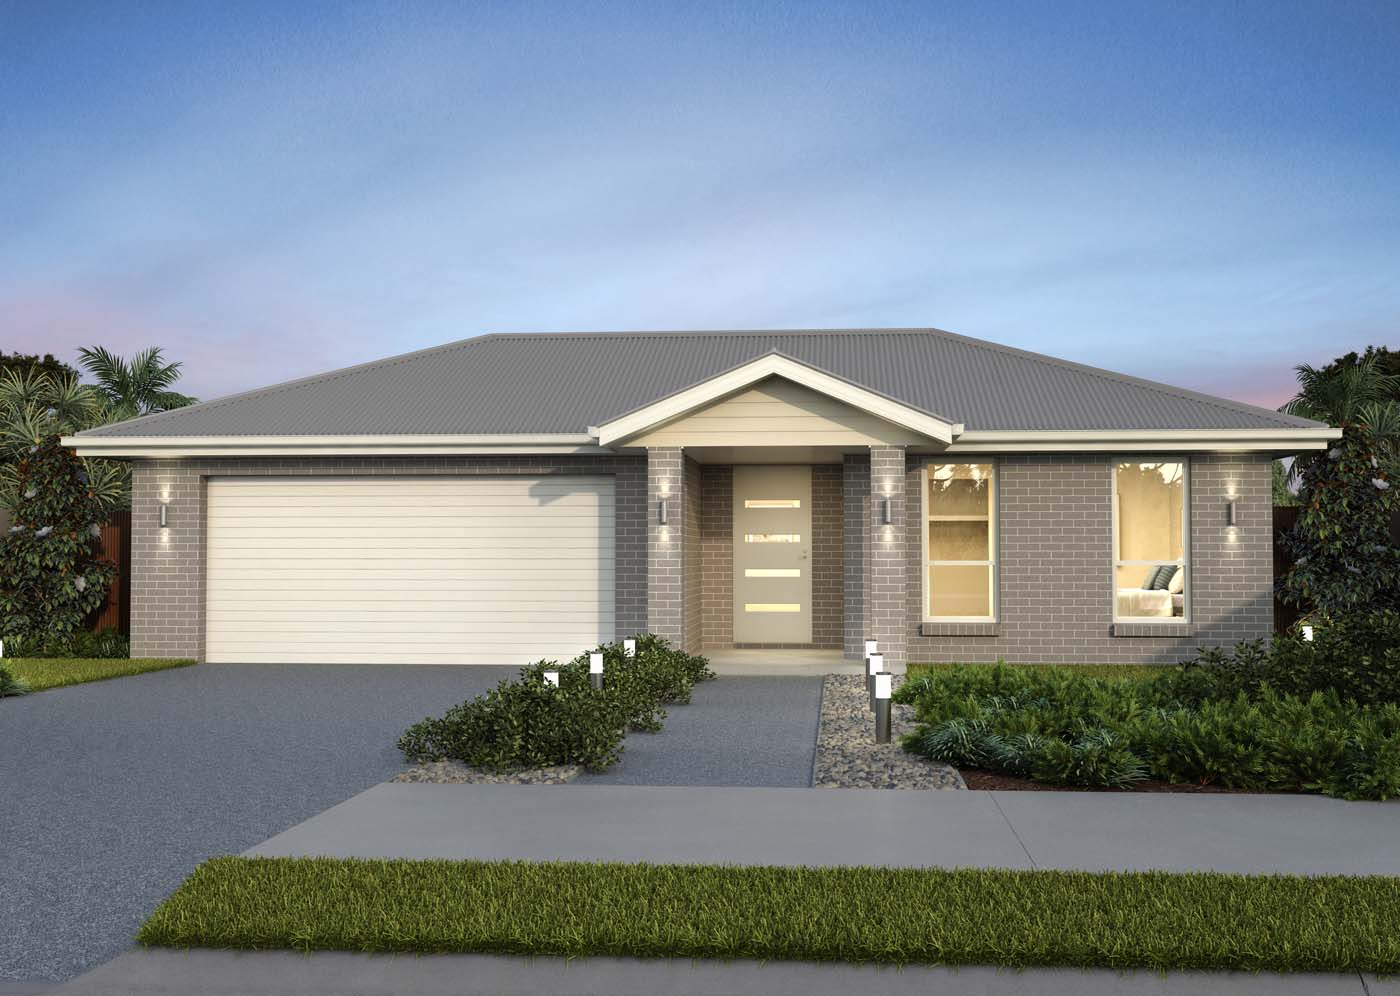 4 bedroom home design single storey house plan fitzroy - Single story 4 bedroom modern house plans ...